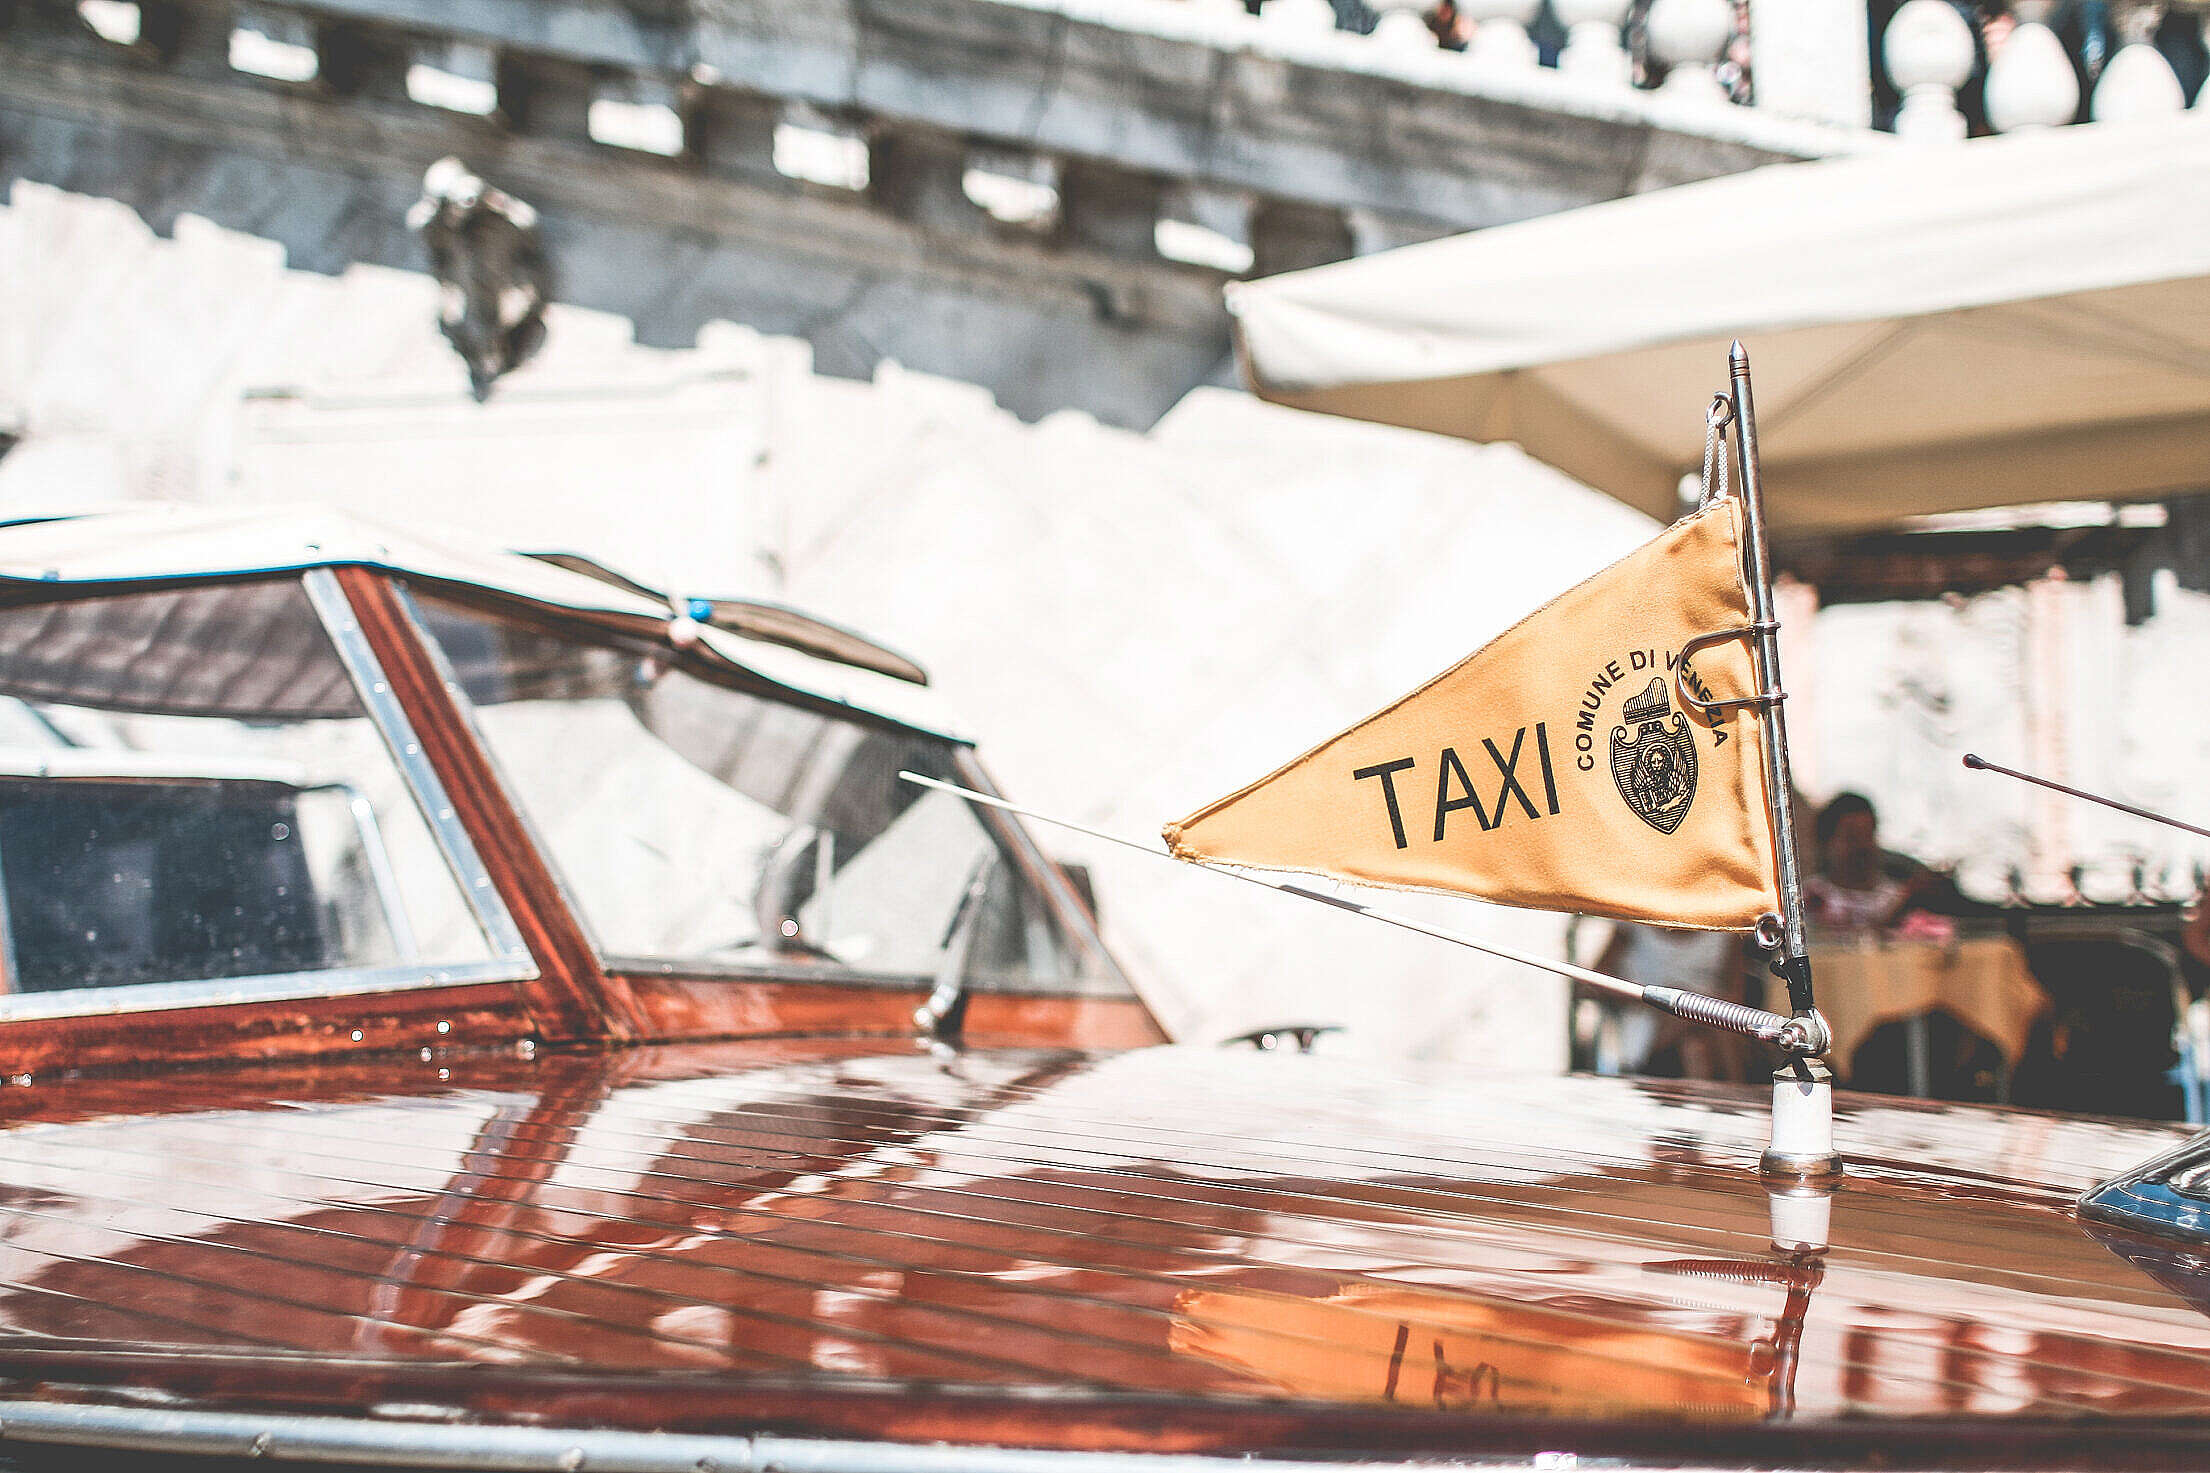 Flag on Iconic Boat Taxi in Venice, Italy Free Stock Photo